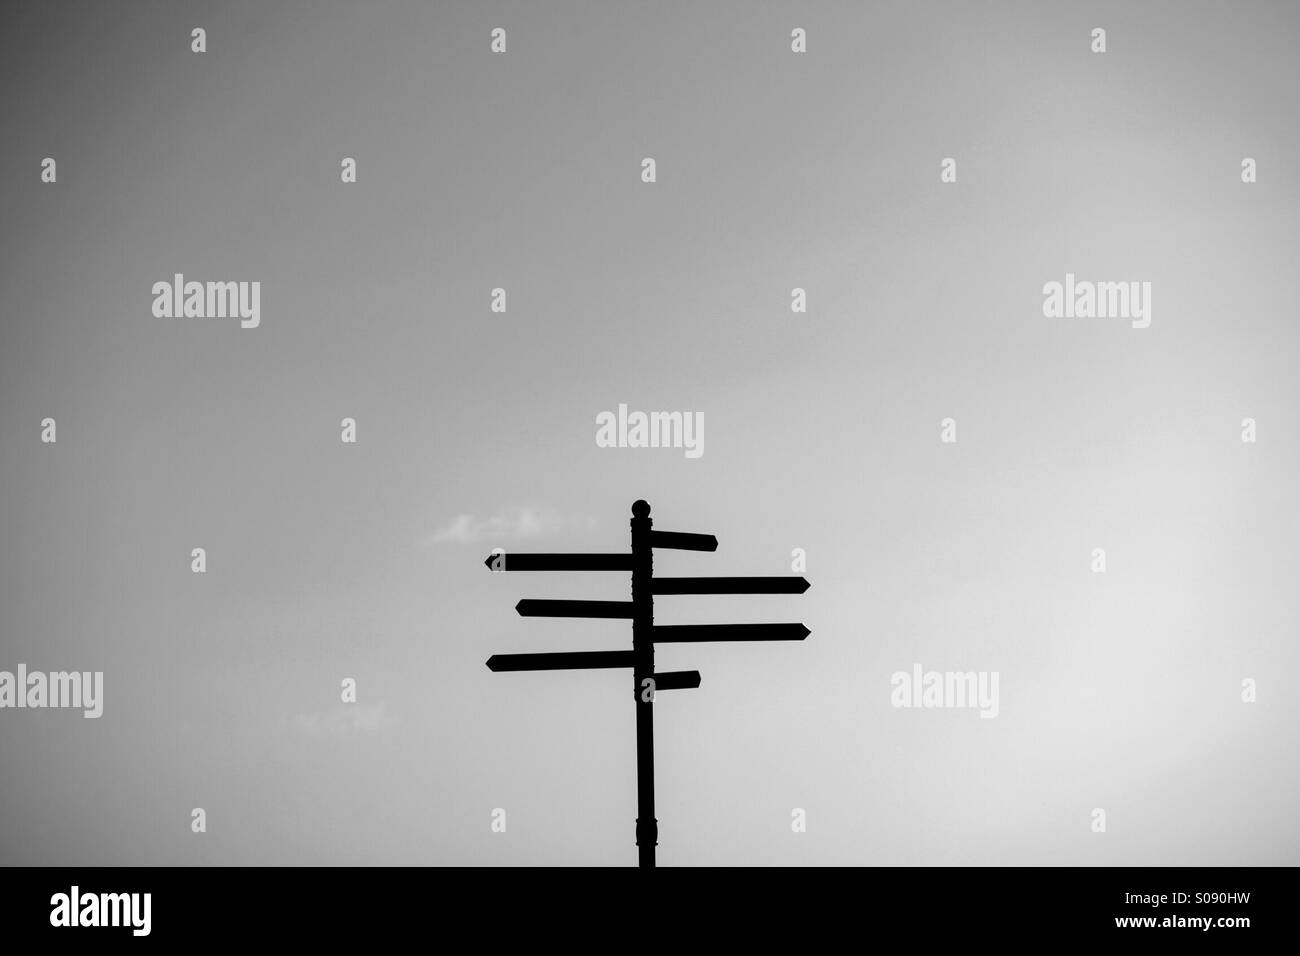 Directions - Stock Image